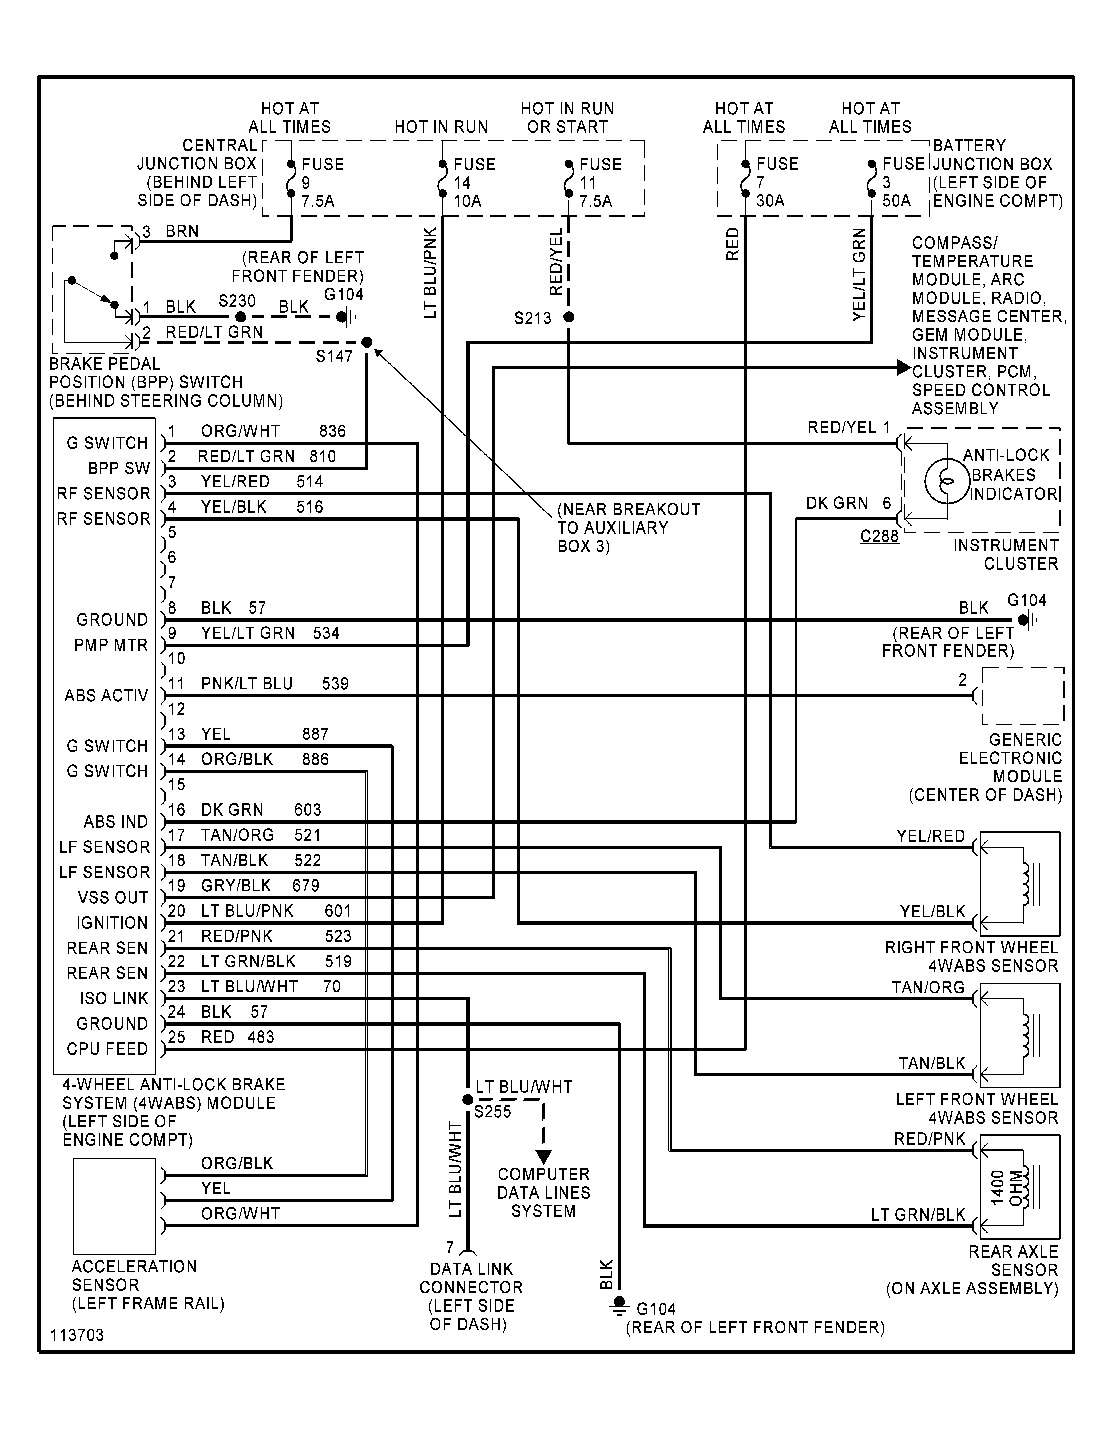 2005 Honda Jazz Headlight Wiring Diagram Mazda 3 Headlight